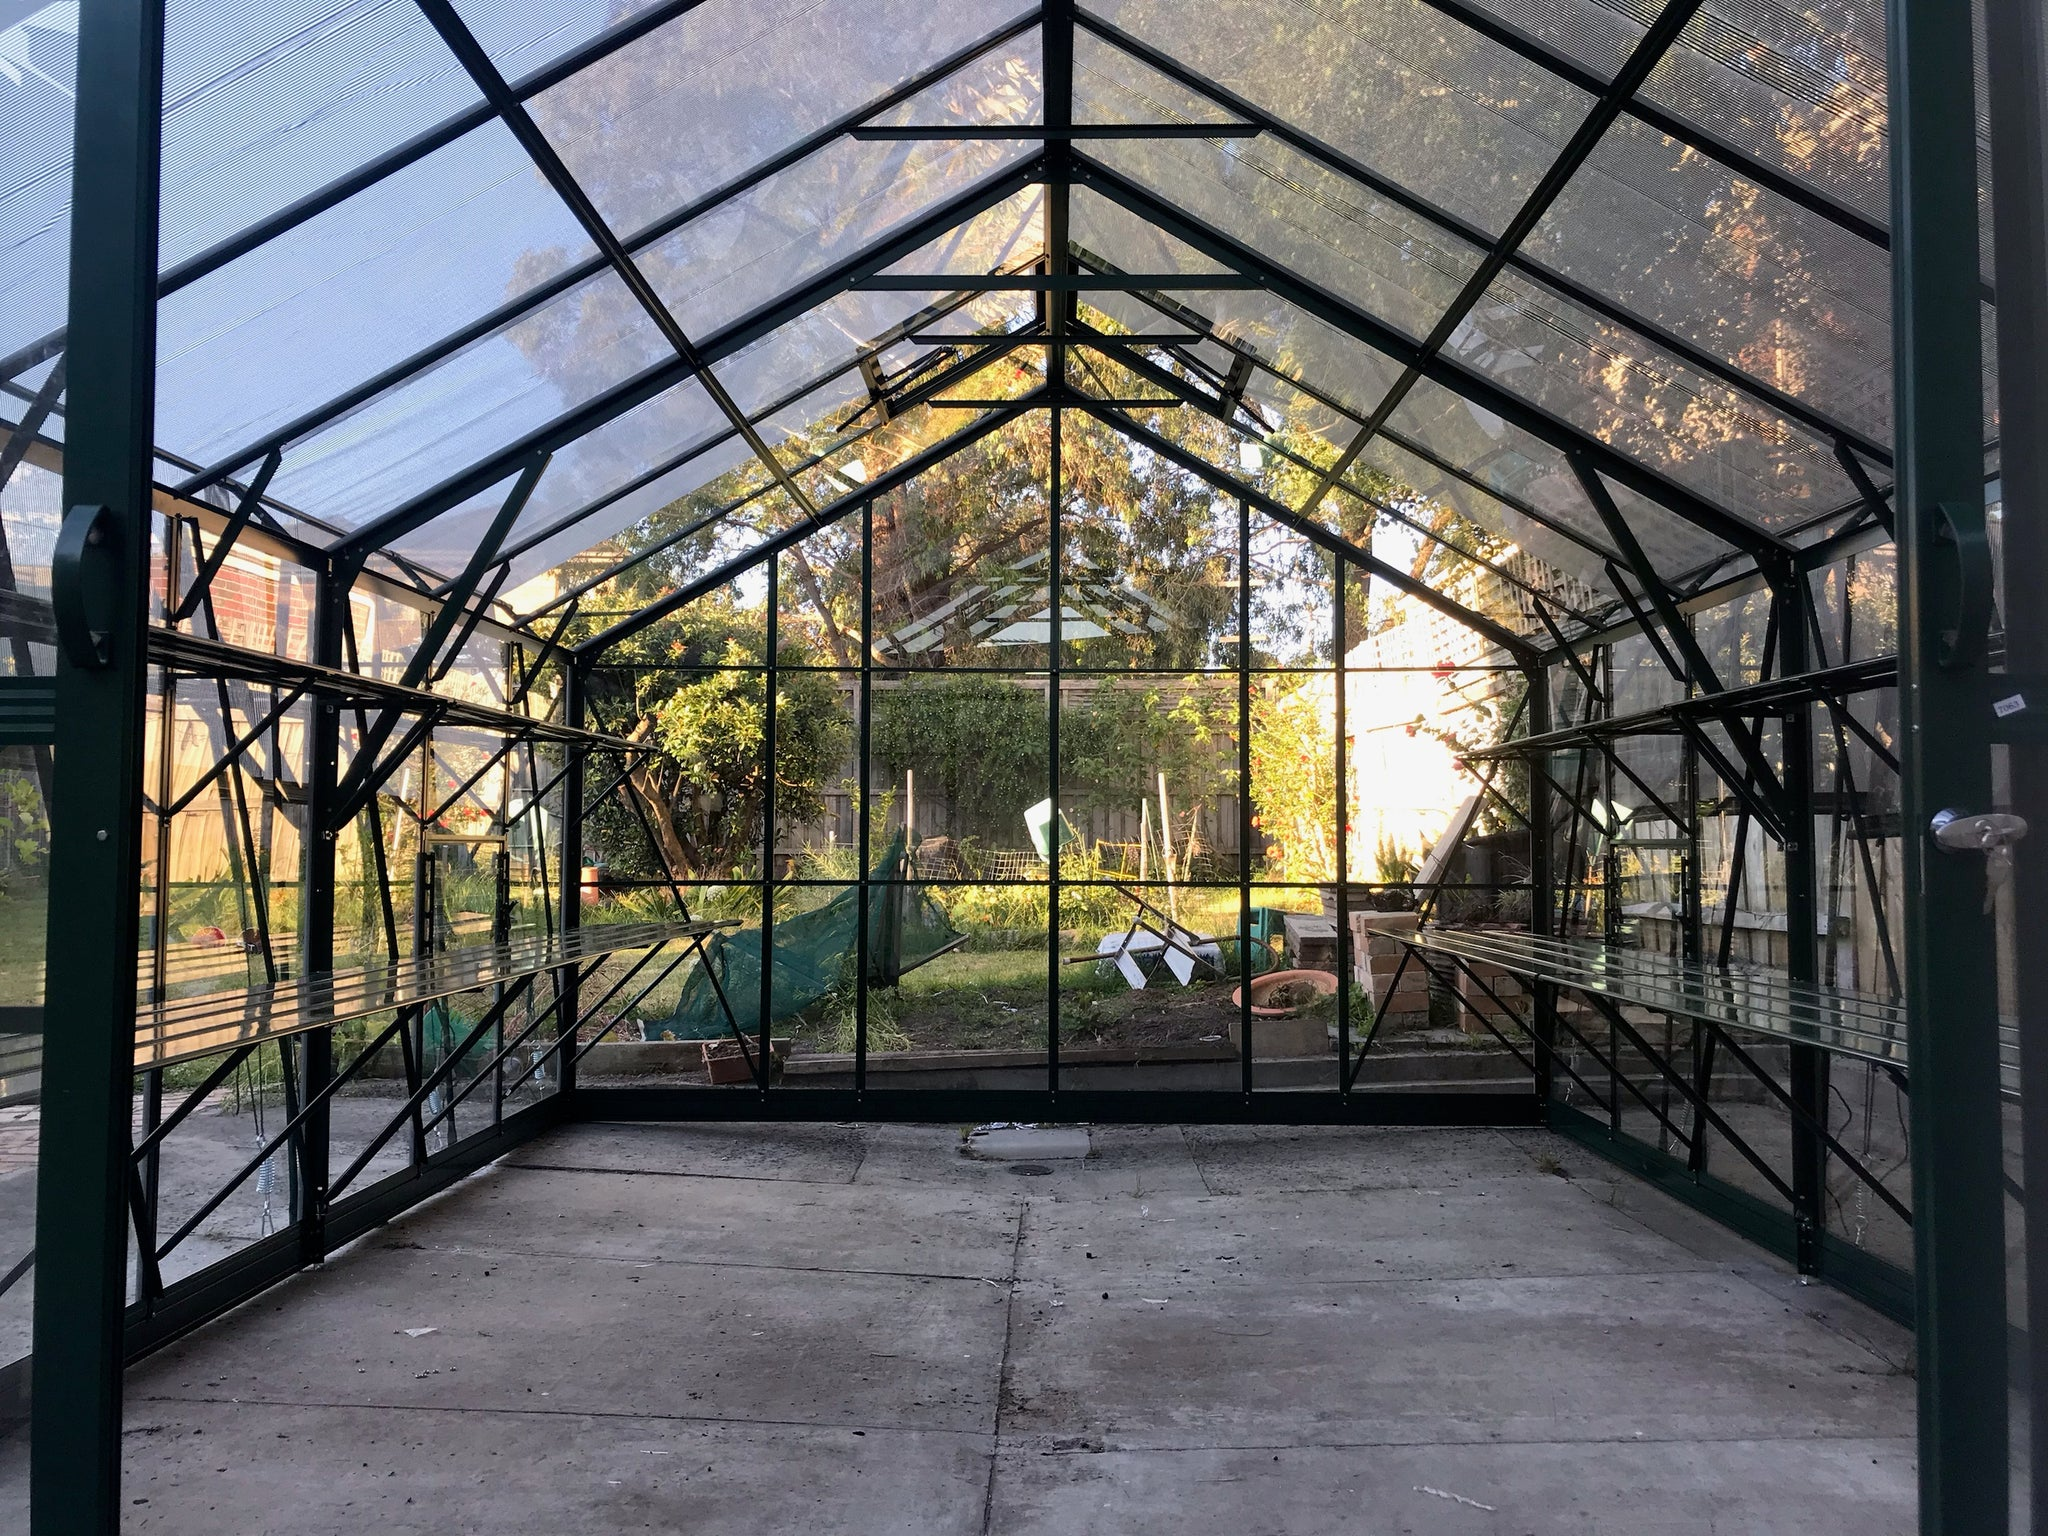 Windsor Royale 3000 Glasshouse- 3.0mLx3.7Wx2.8Hm (9.9x12.1x9.2ft)